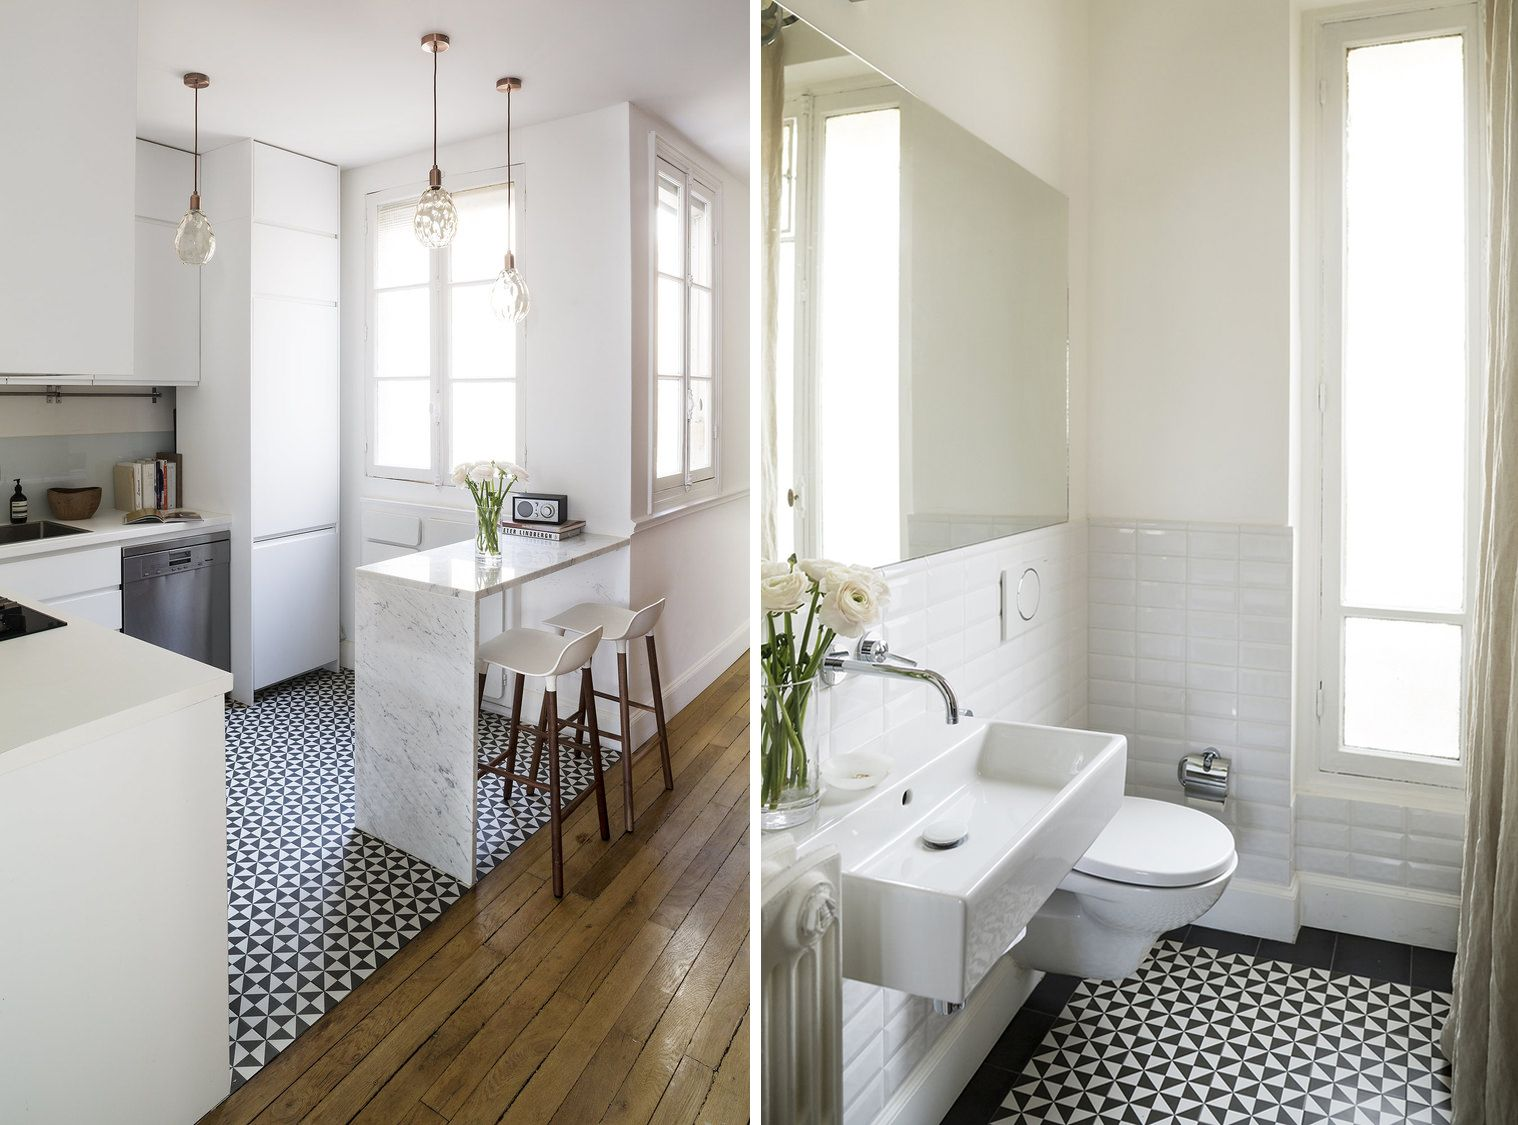 5 Homes That Show Off How to Live Large in a Small Space | Small ...